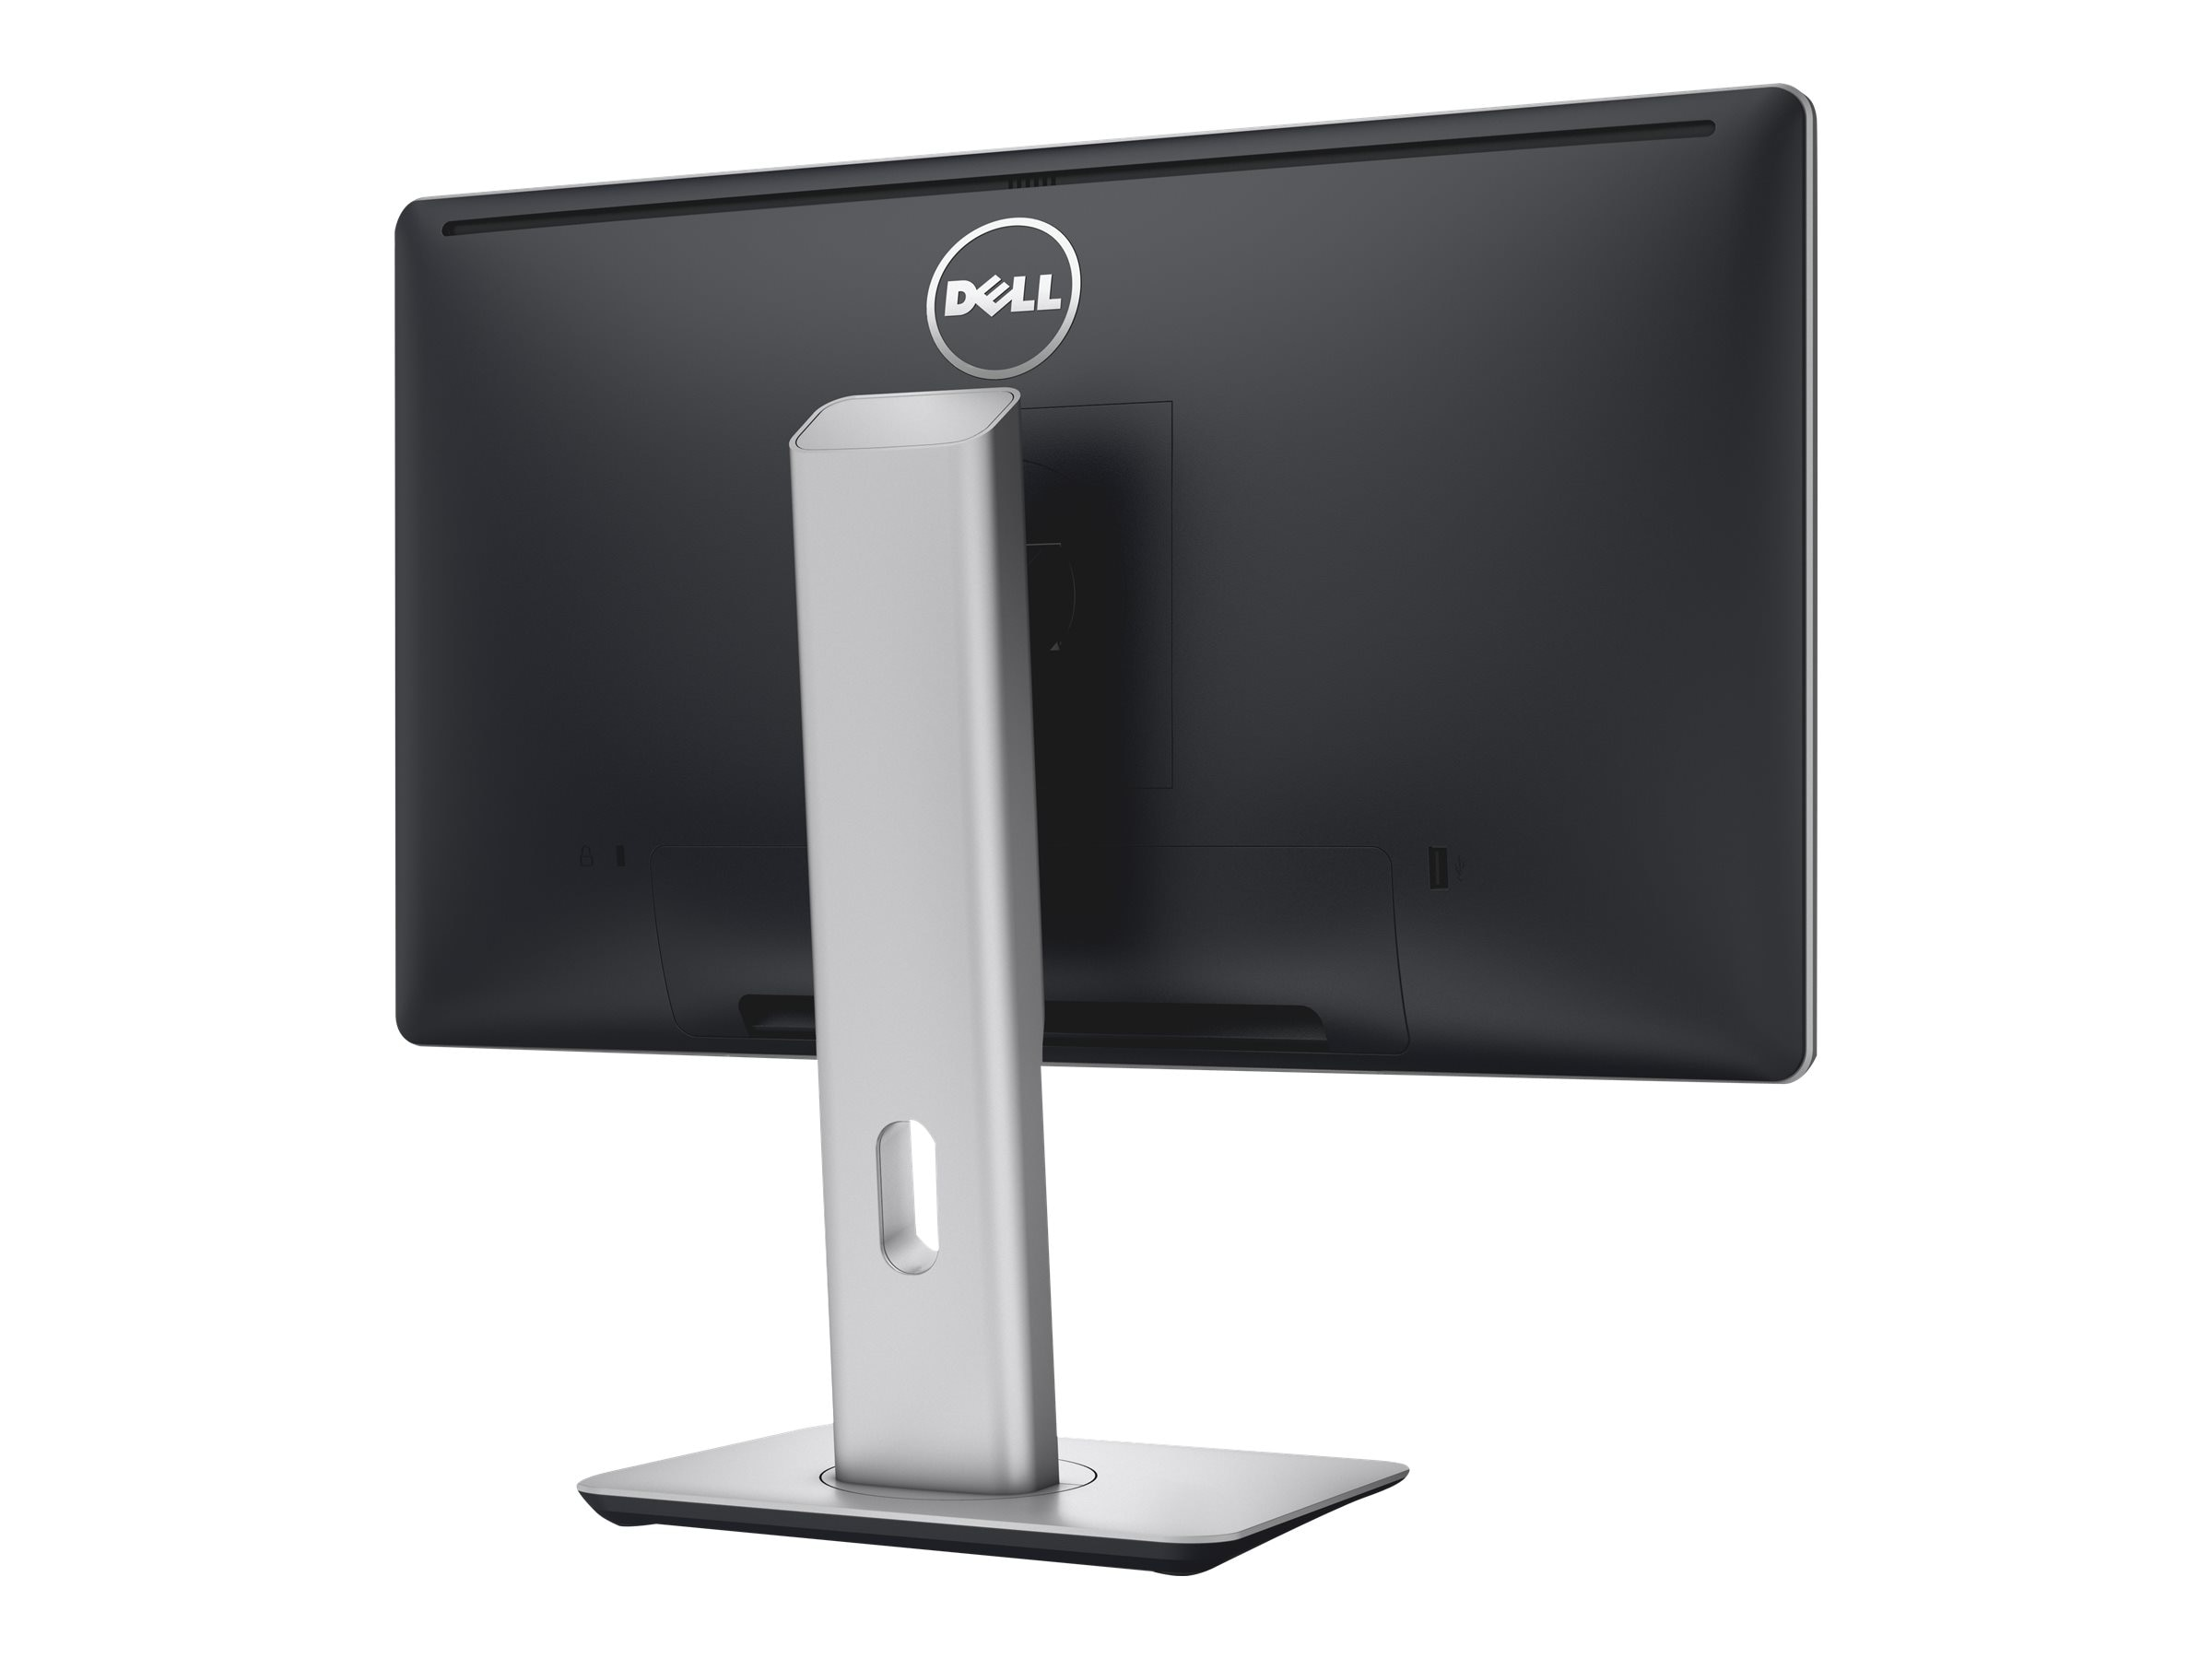 Dell 21.5 P2214H Full HD LED-LCD Monitor, Black, P2214H